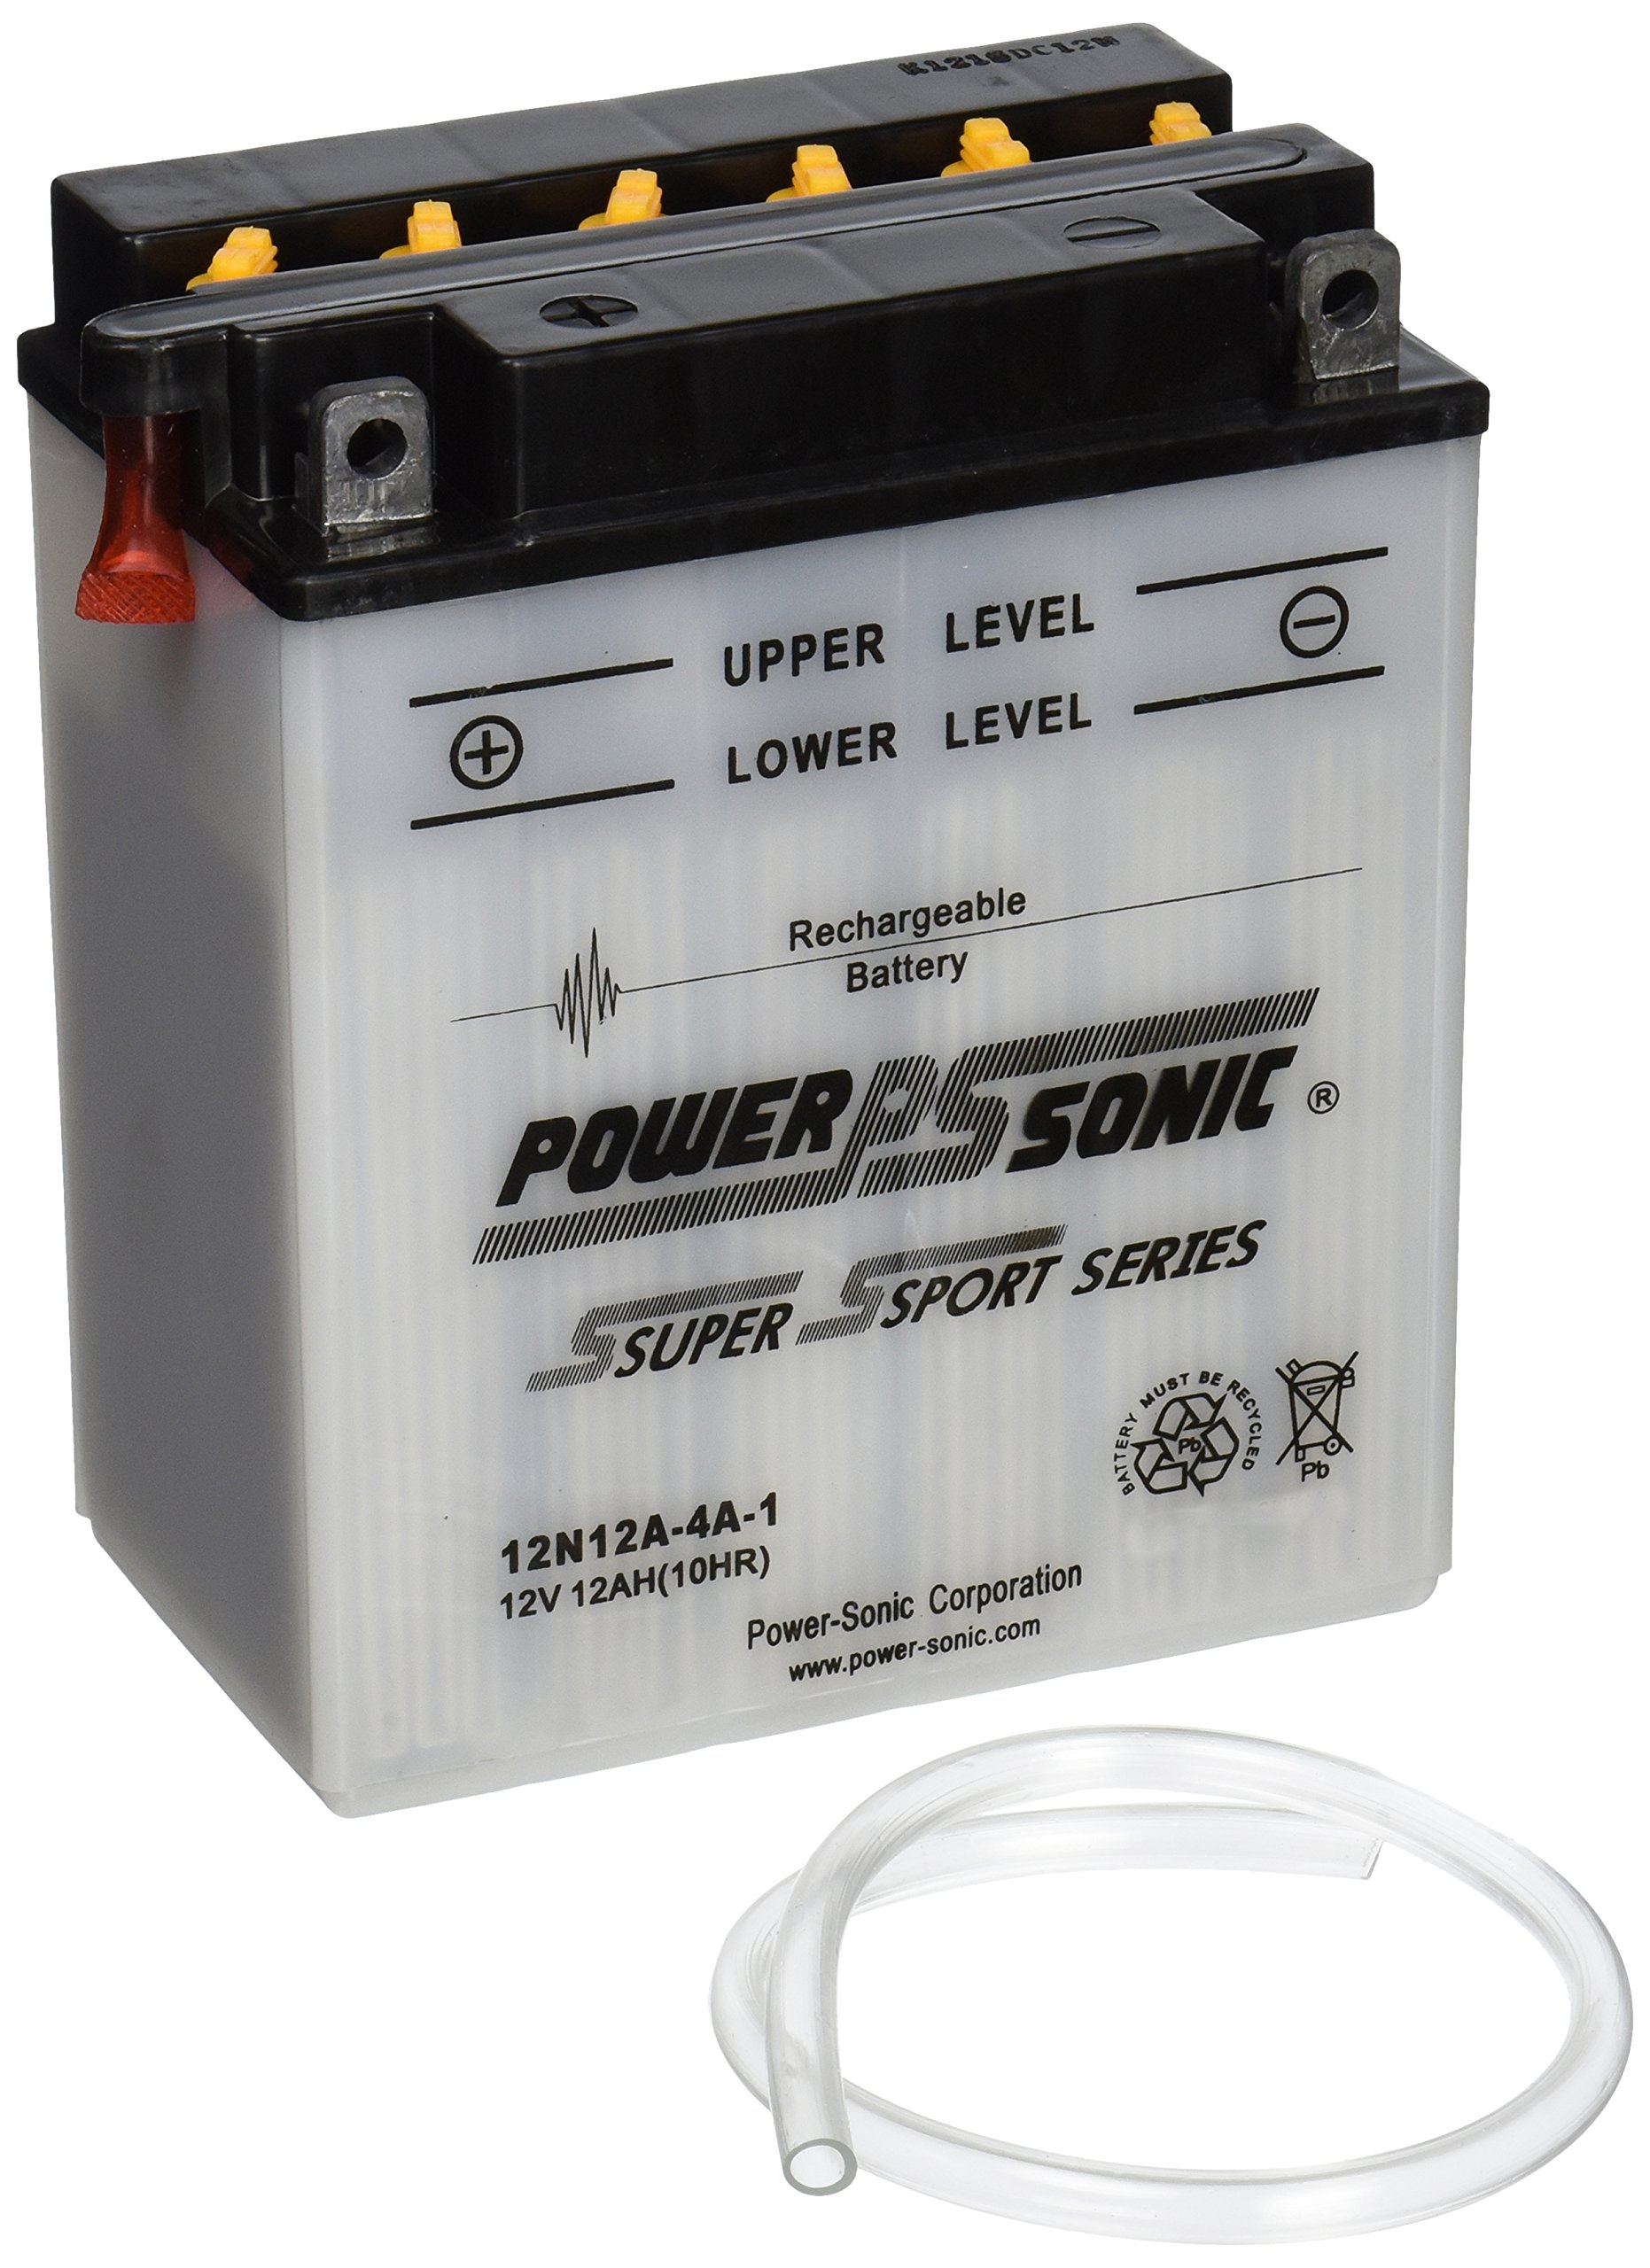 Power-Sonic 12N12A-4A-1 Conventional Powersport Battery